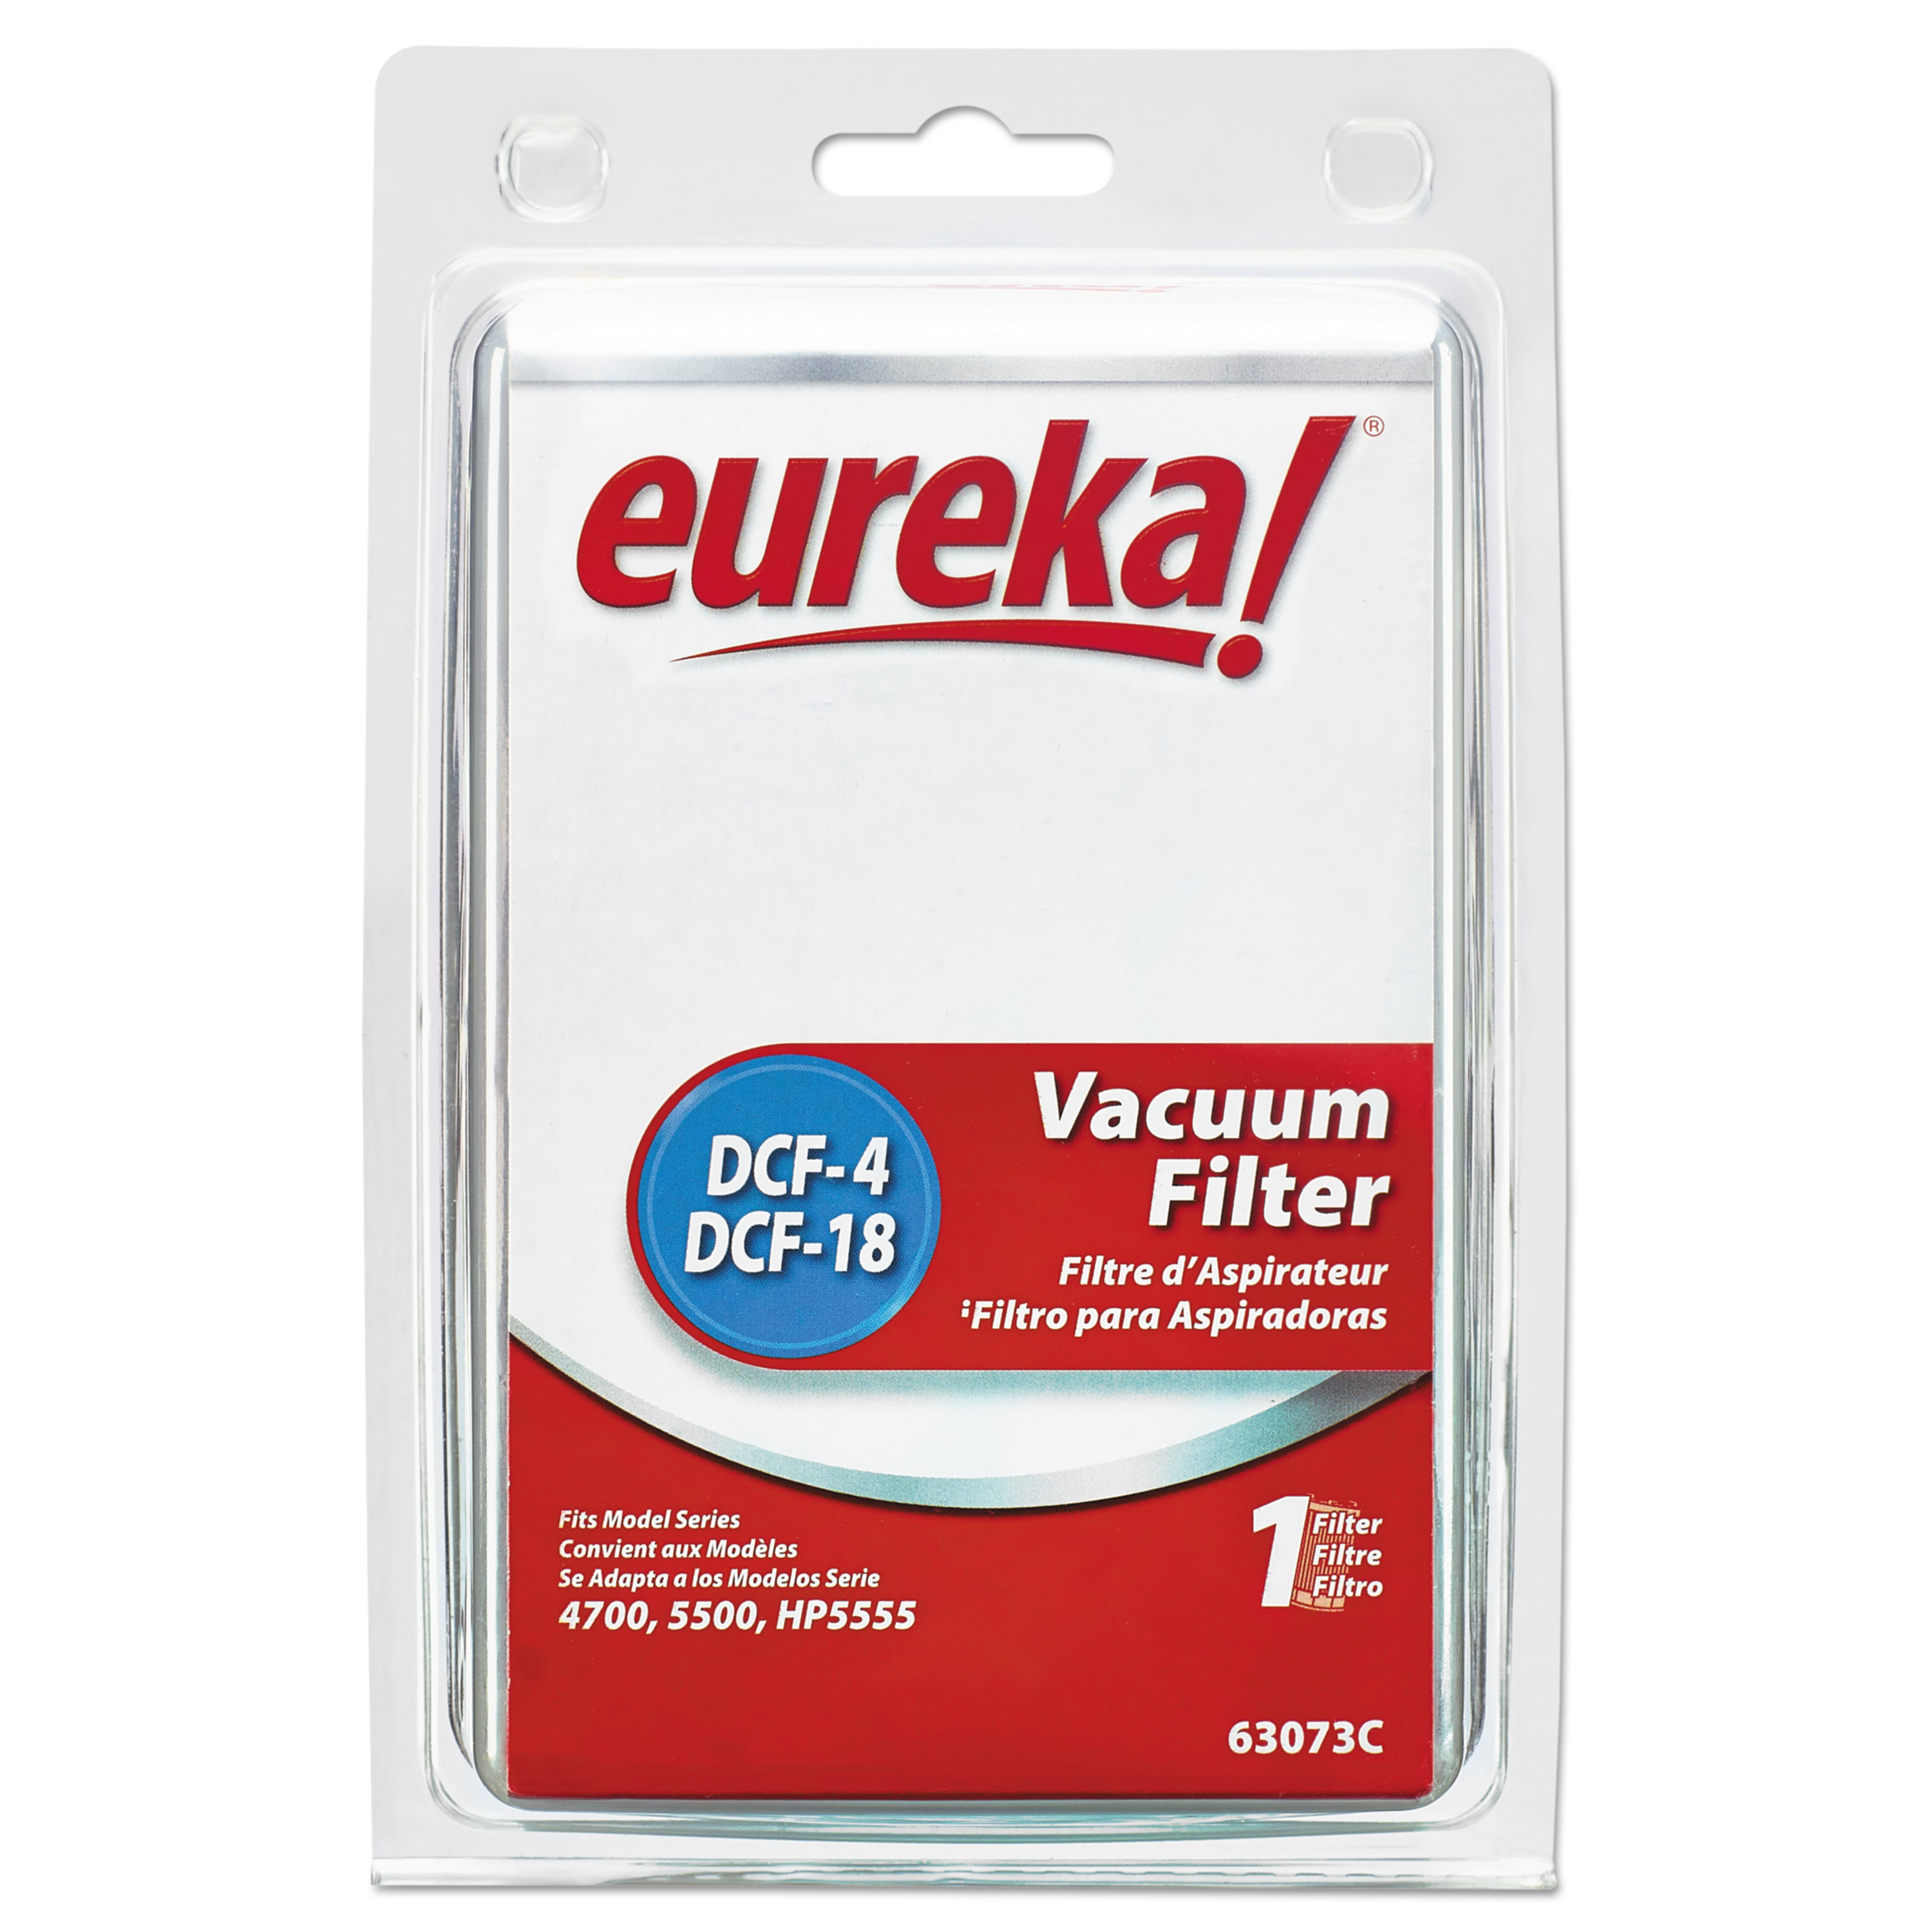 Eureka DCF-18 Washable Dust Cup Filter for 4700/5550/HP5550 Series Vacuums, 2/CS